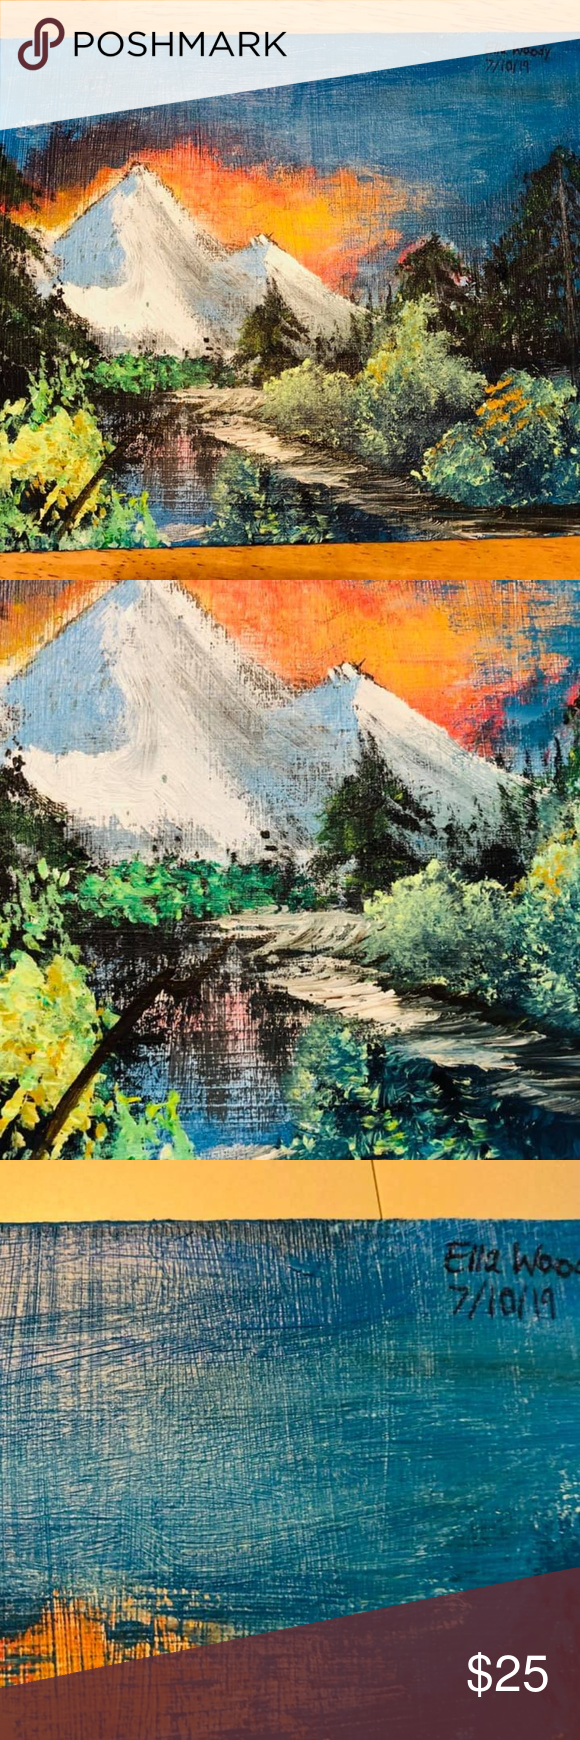 Bob Ross Inspired Canvas Painting 8x10in Canvas Painting Bob Ross Painting